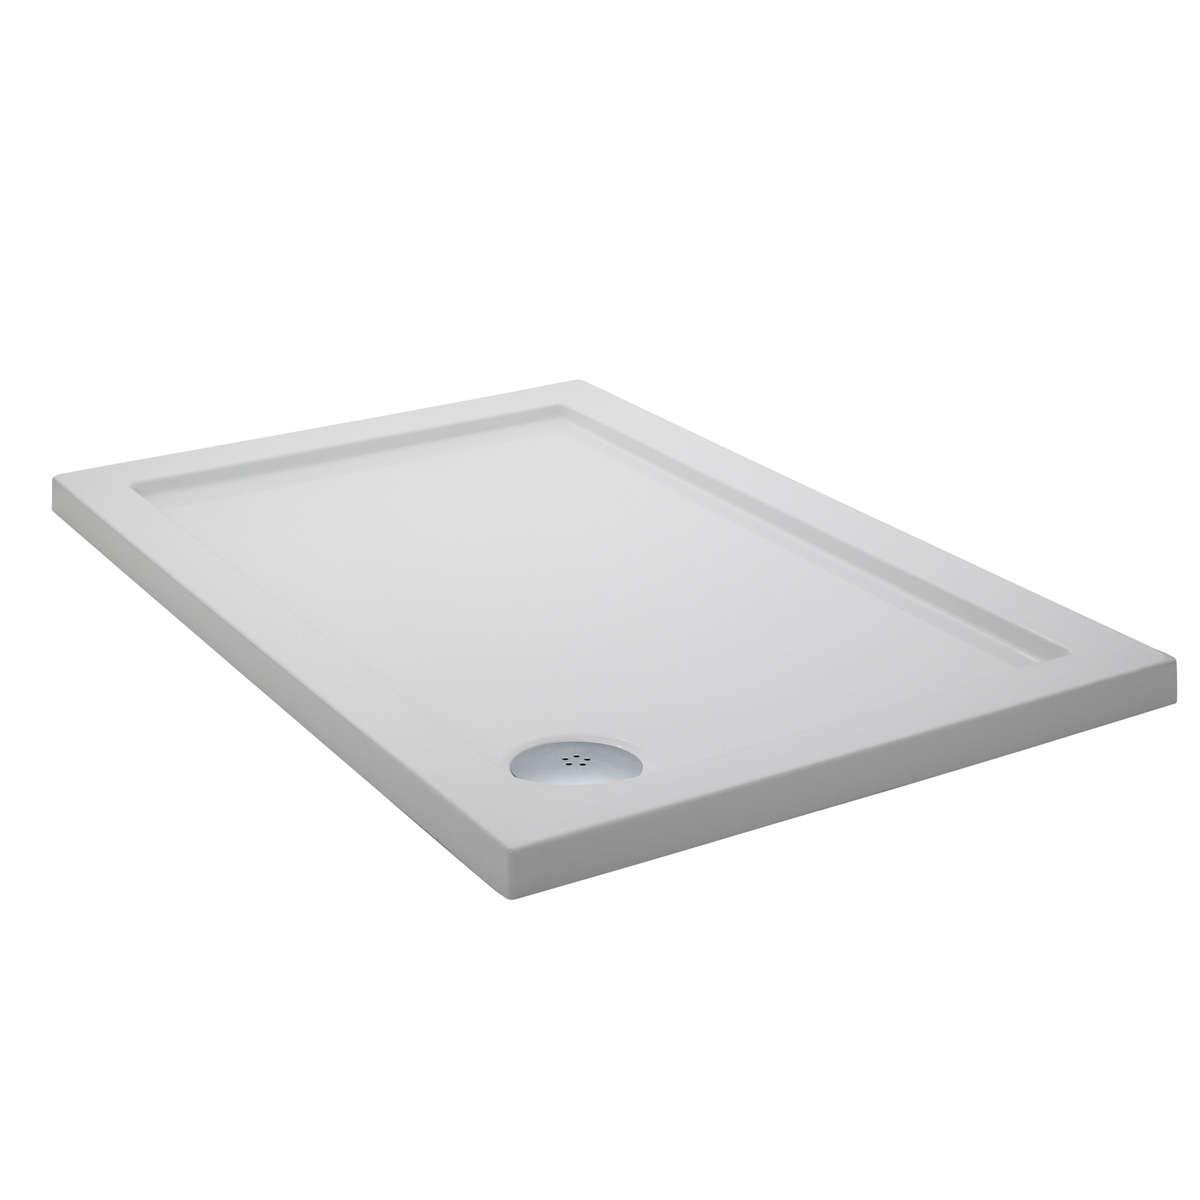 Pearlstone Rectangular Shower Tray Size: 120 cm W x 90 cm D: Amazon ...